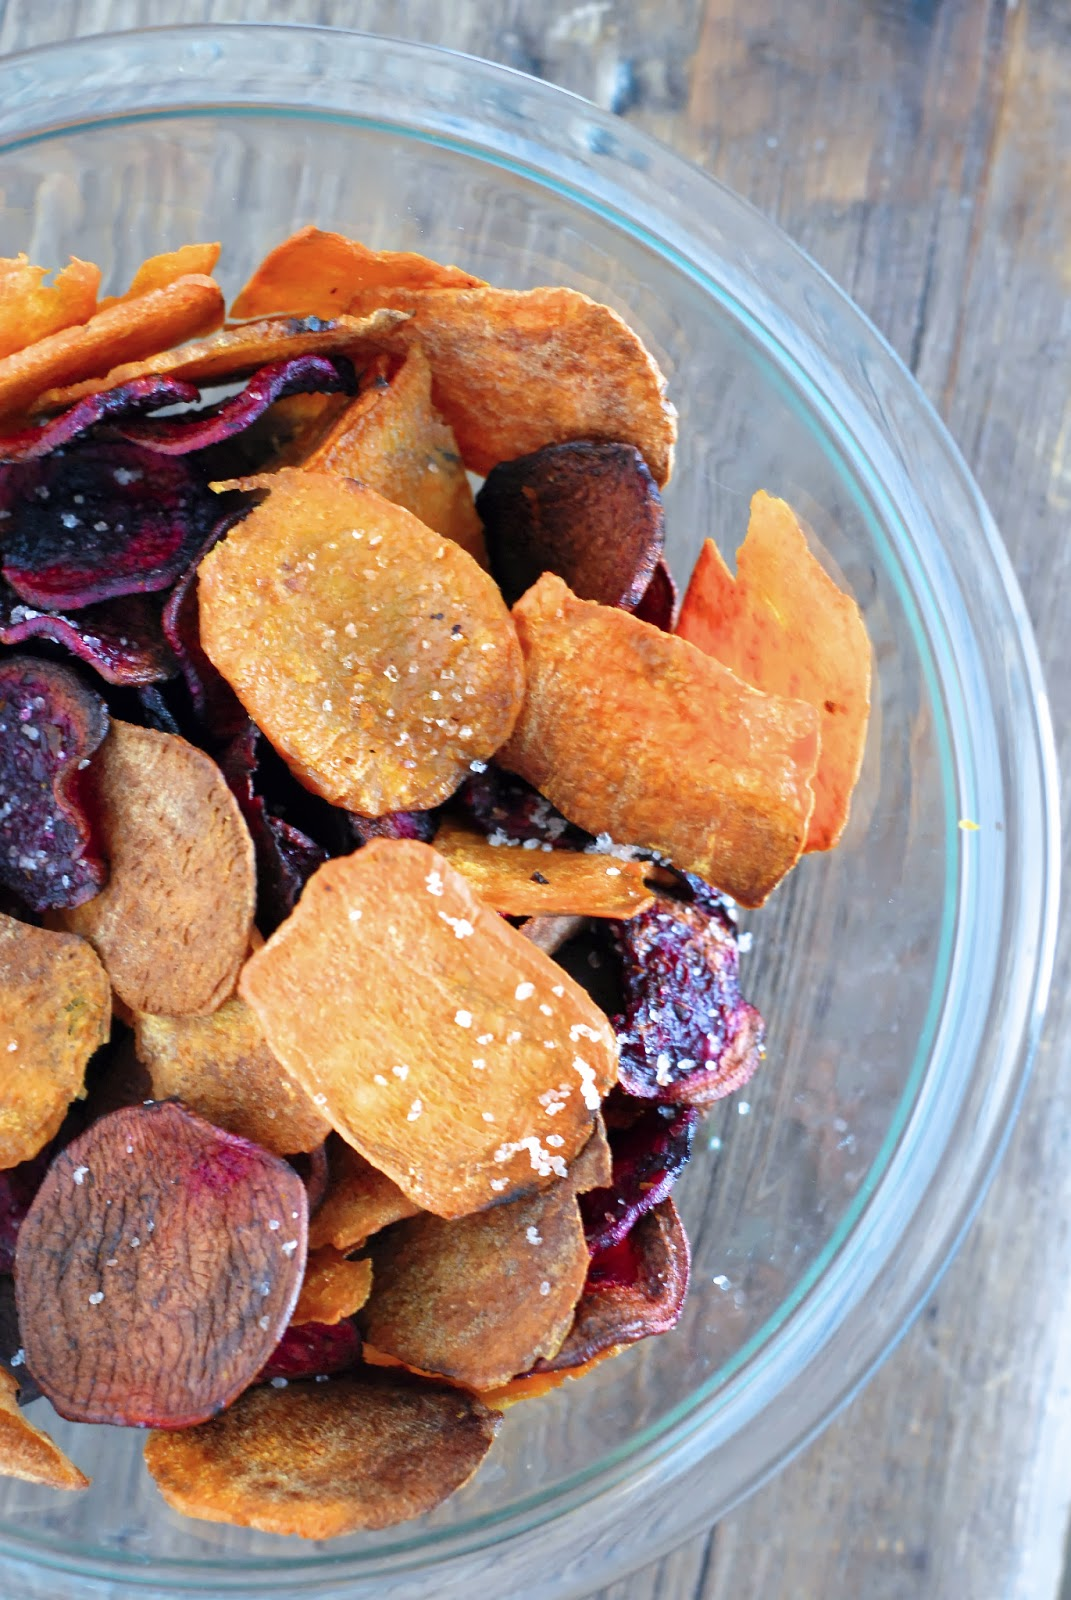 ve been wanting to make beet chips for a while now. so here they are ...